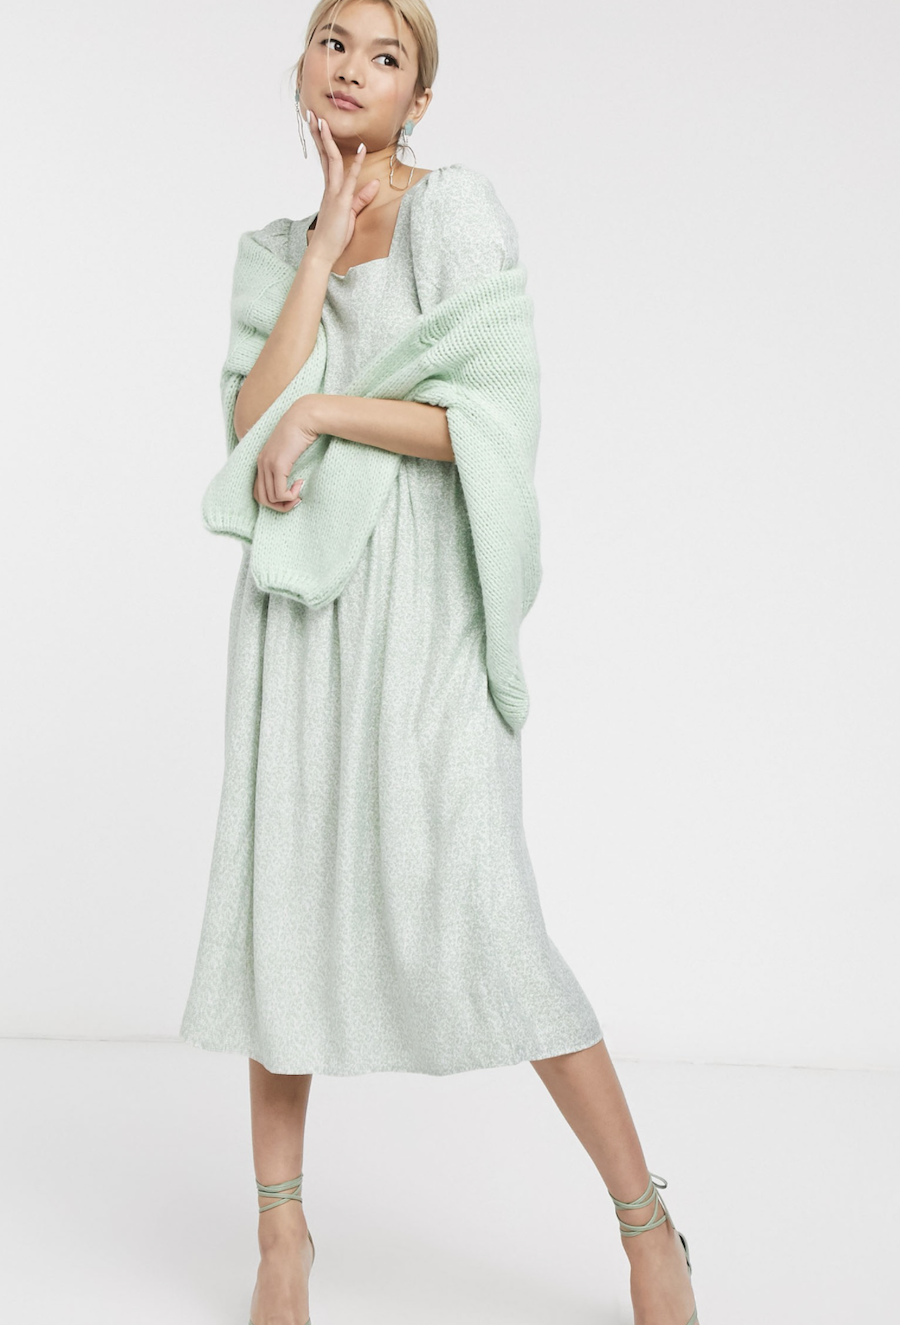 Midi dress in sage green with puffed sleeves and vintage floral print by & Other Stories